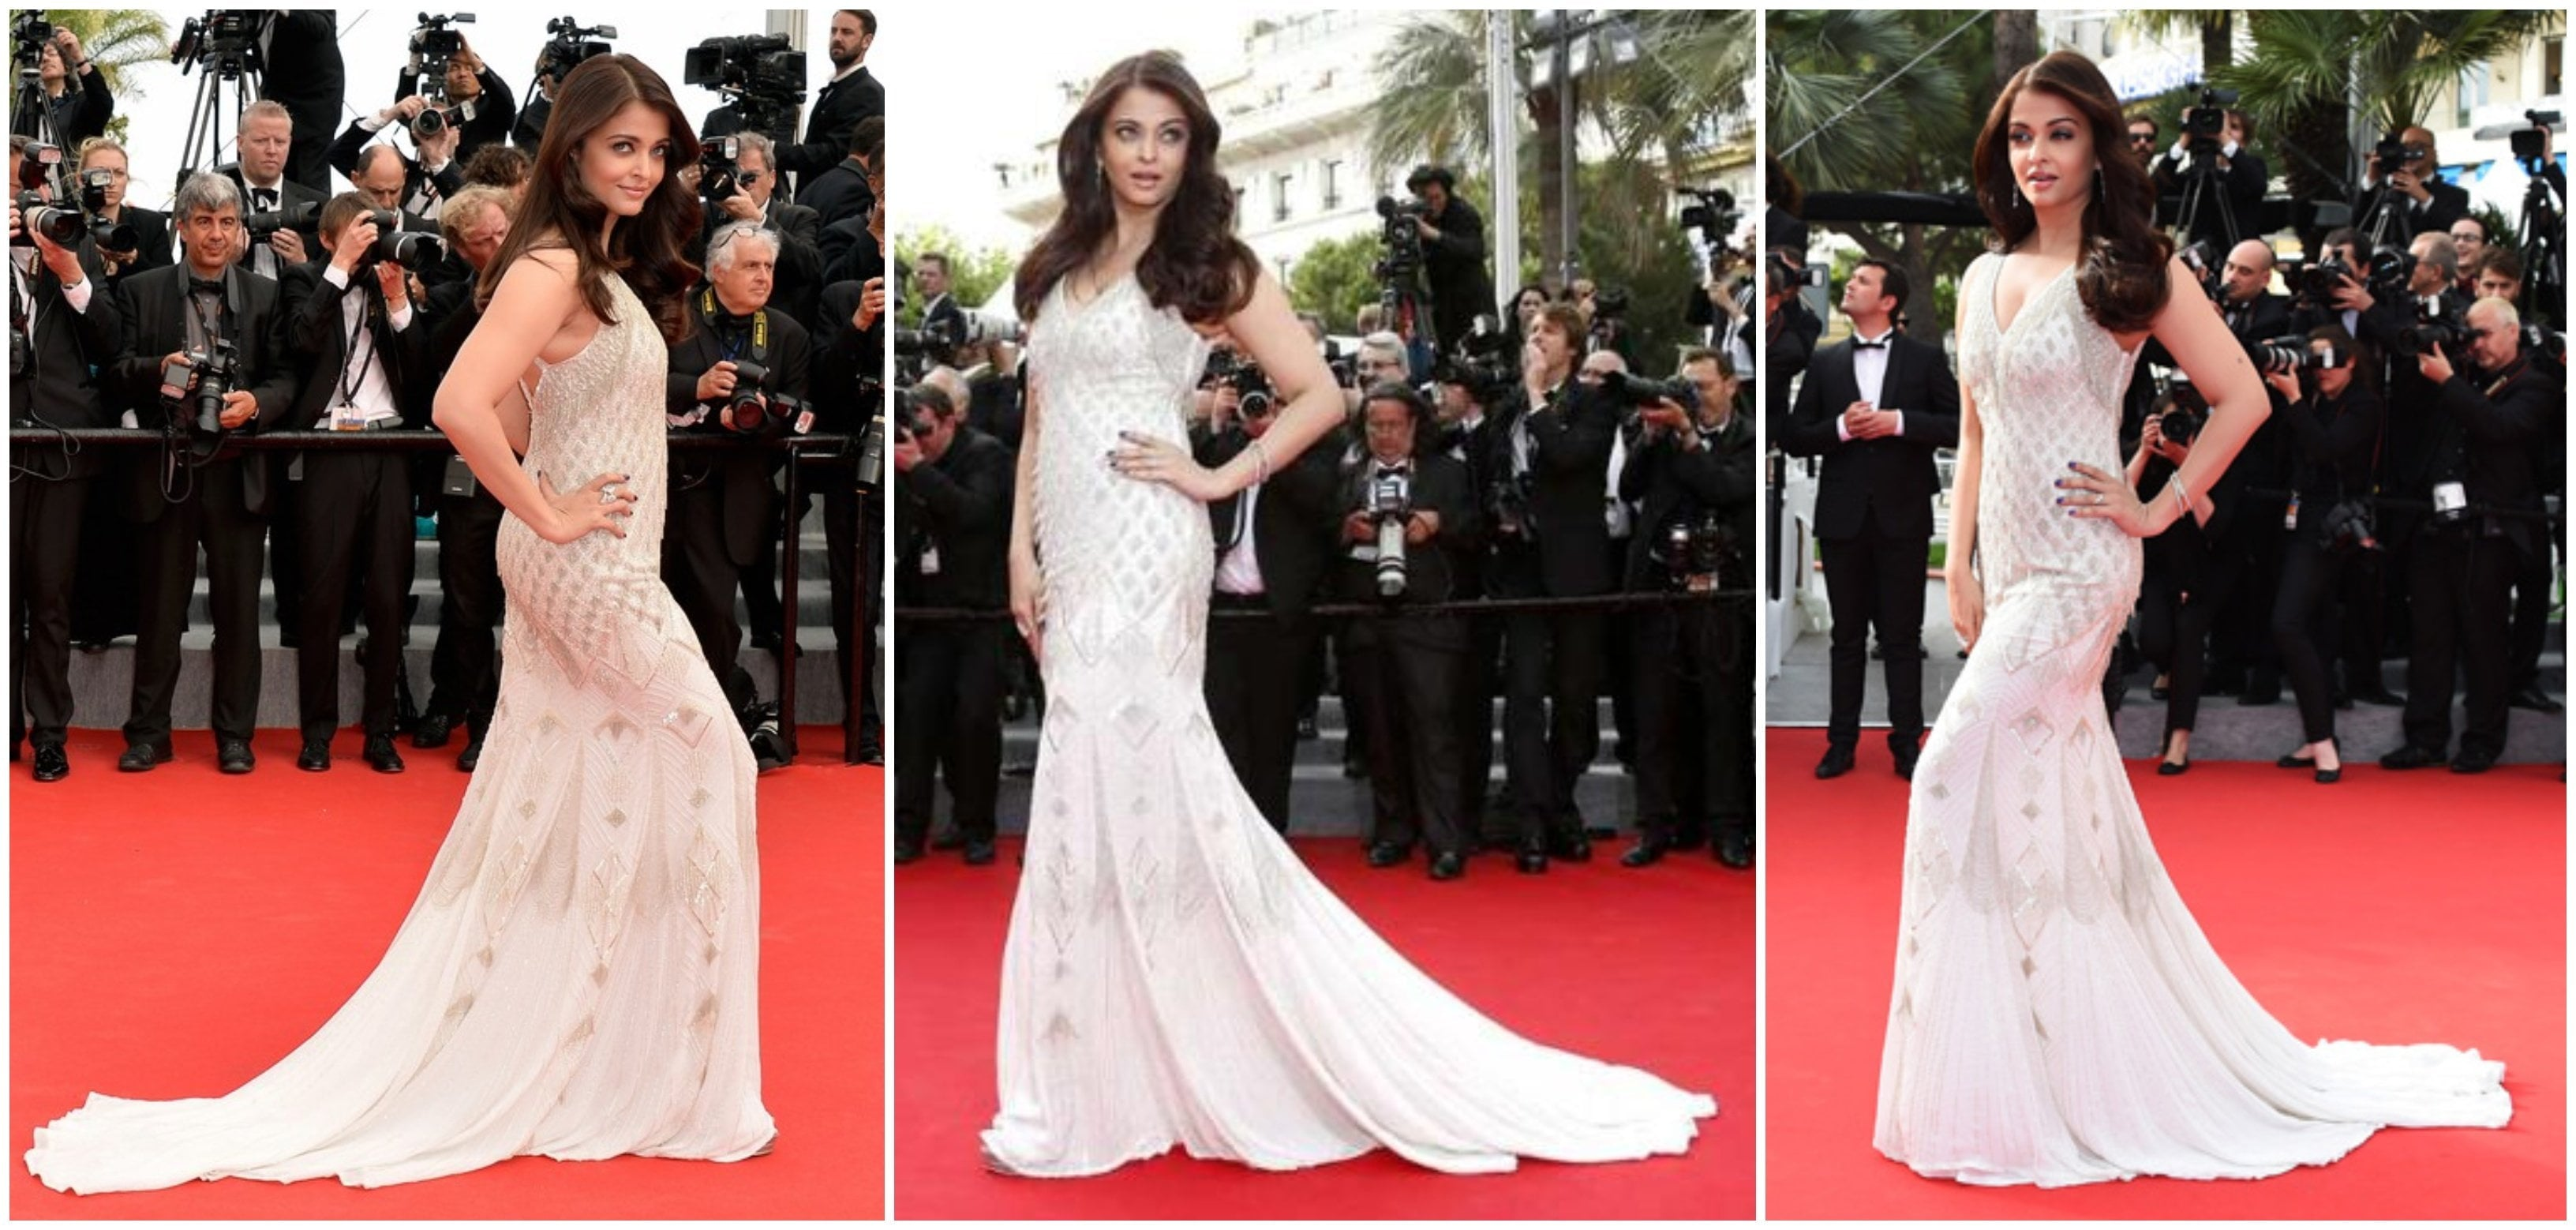 Celeb Look Book - Aishwarya's Beaded Ivory Gown for Beautiful Bridesmaids!